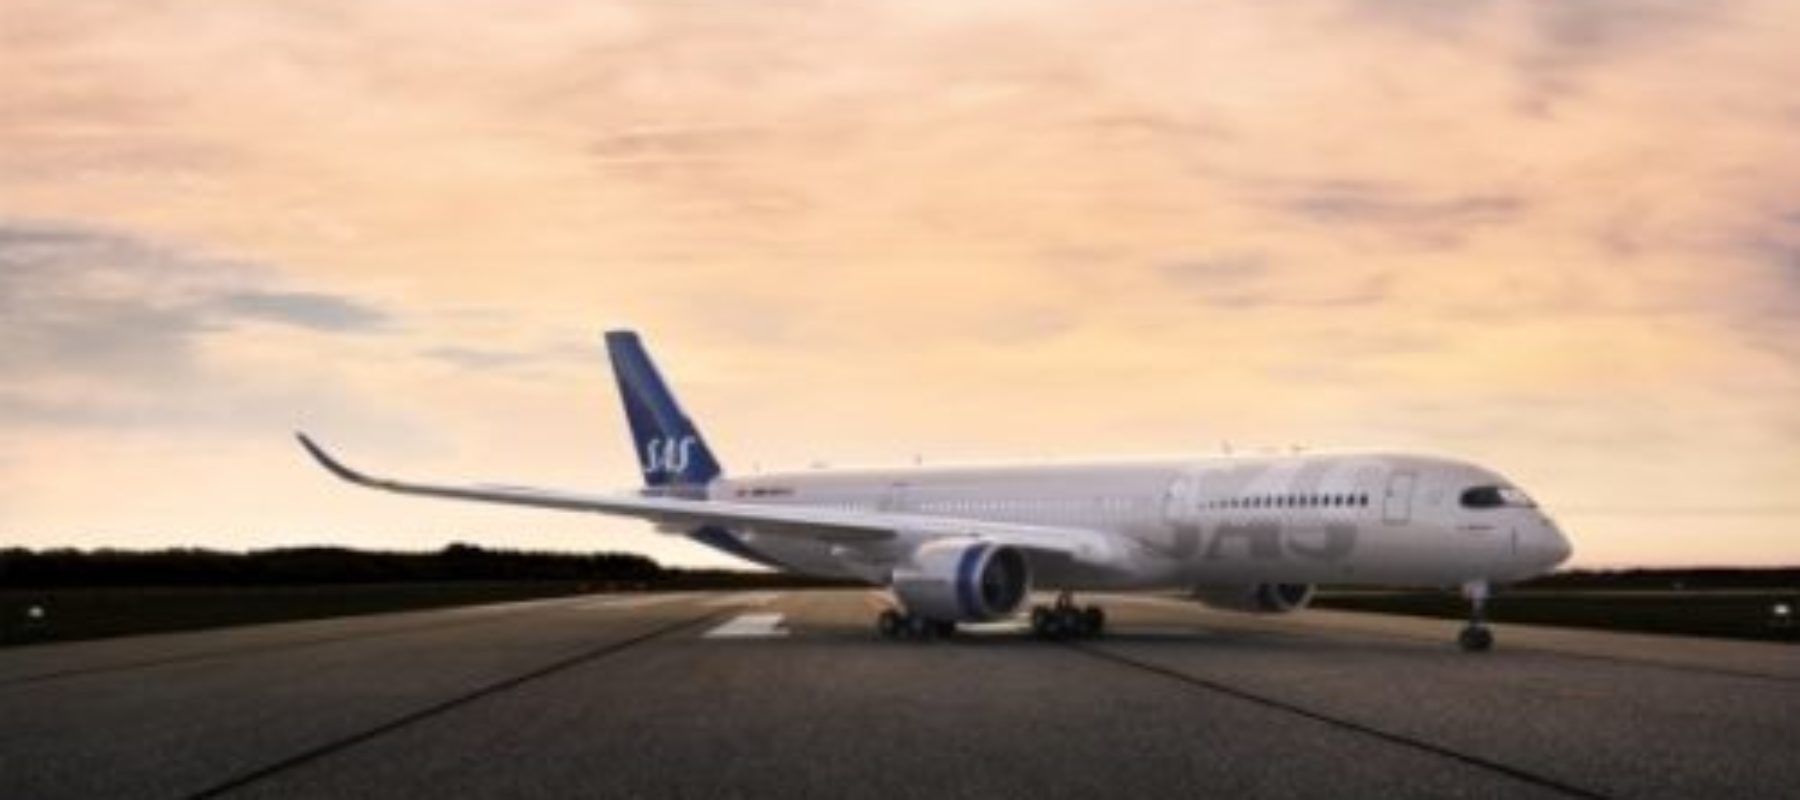 SAS raises full-year guidance | Airline Financials content from ATWOnline